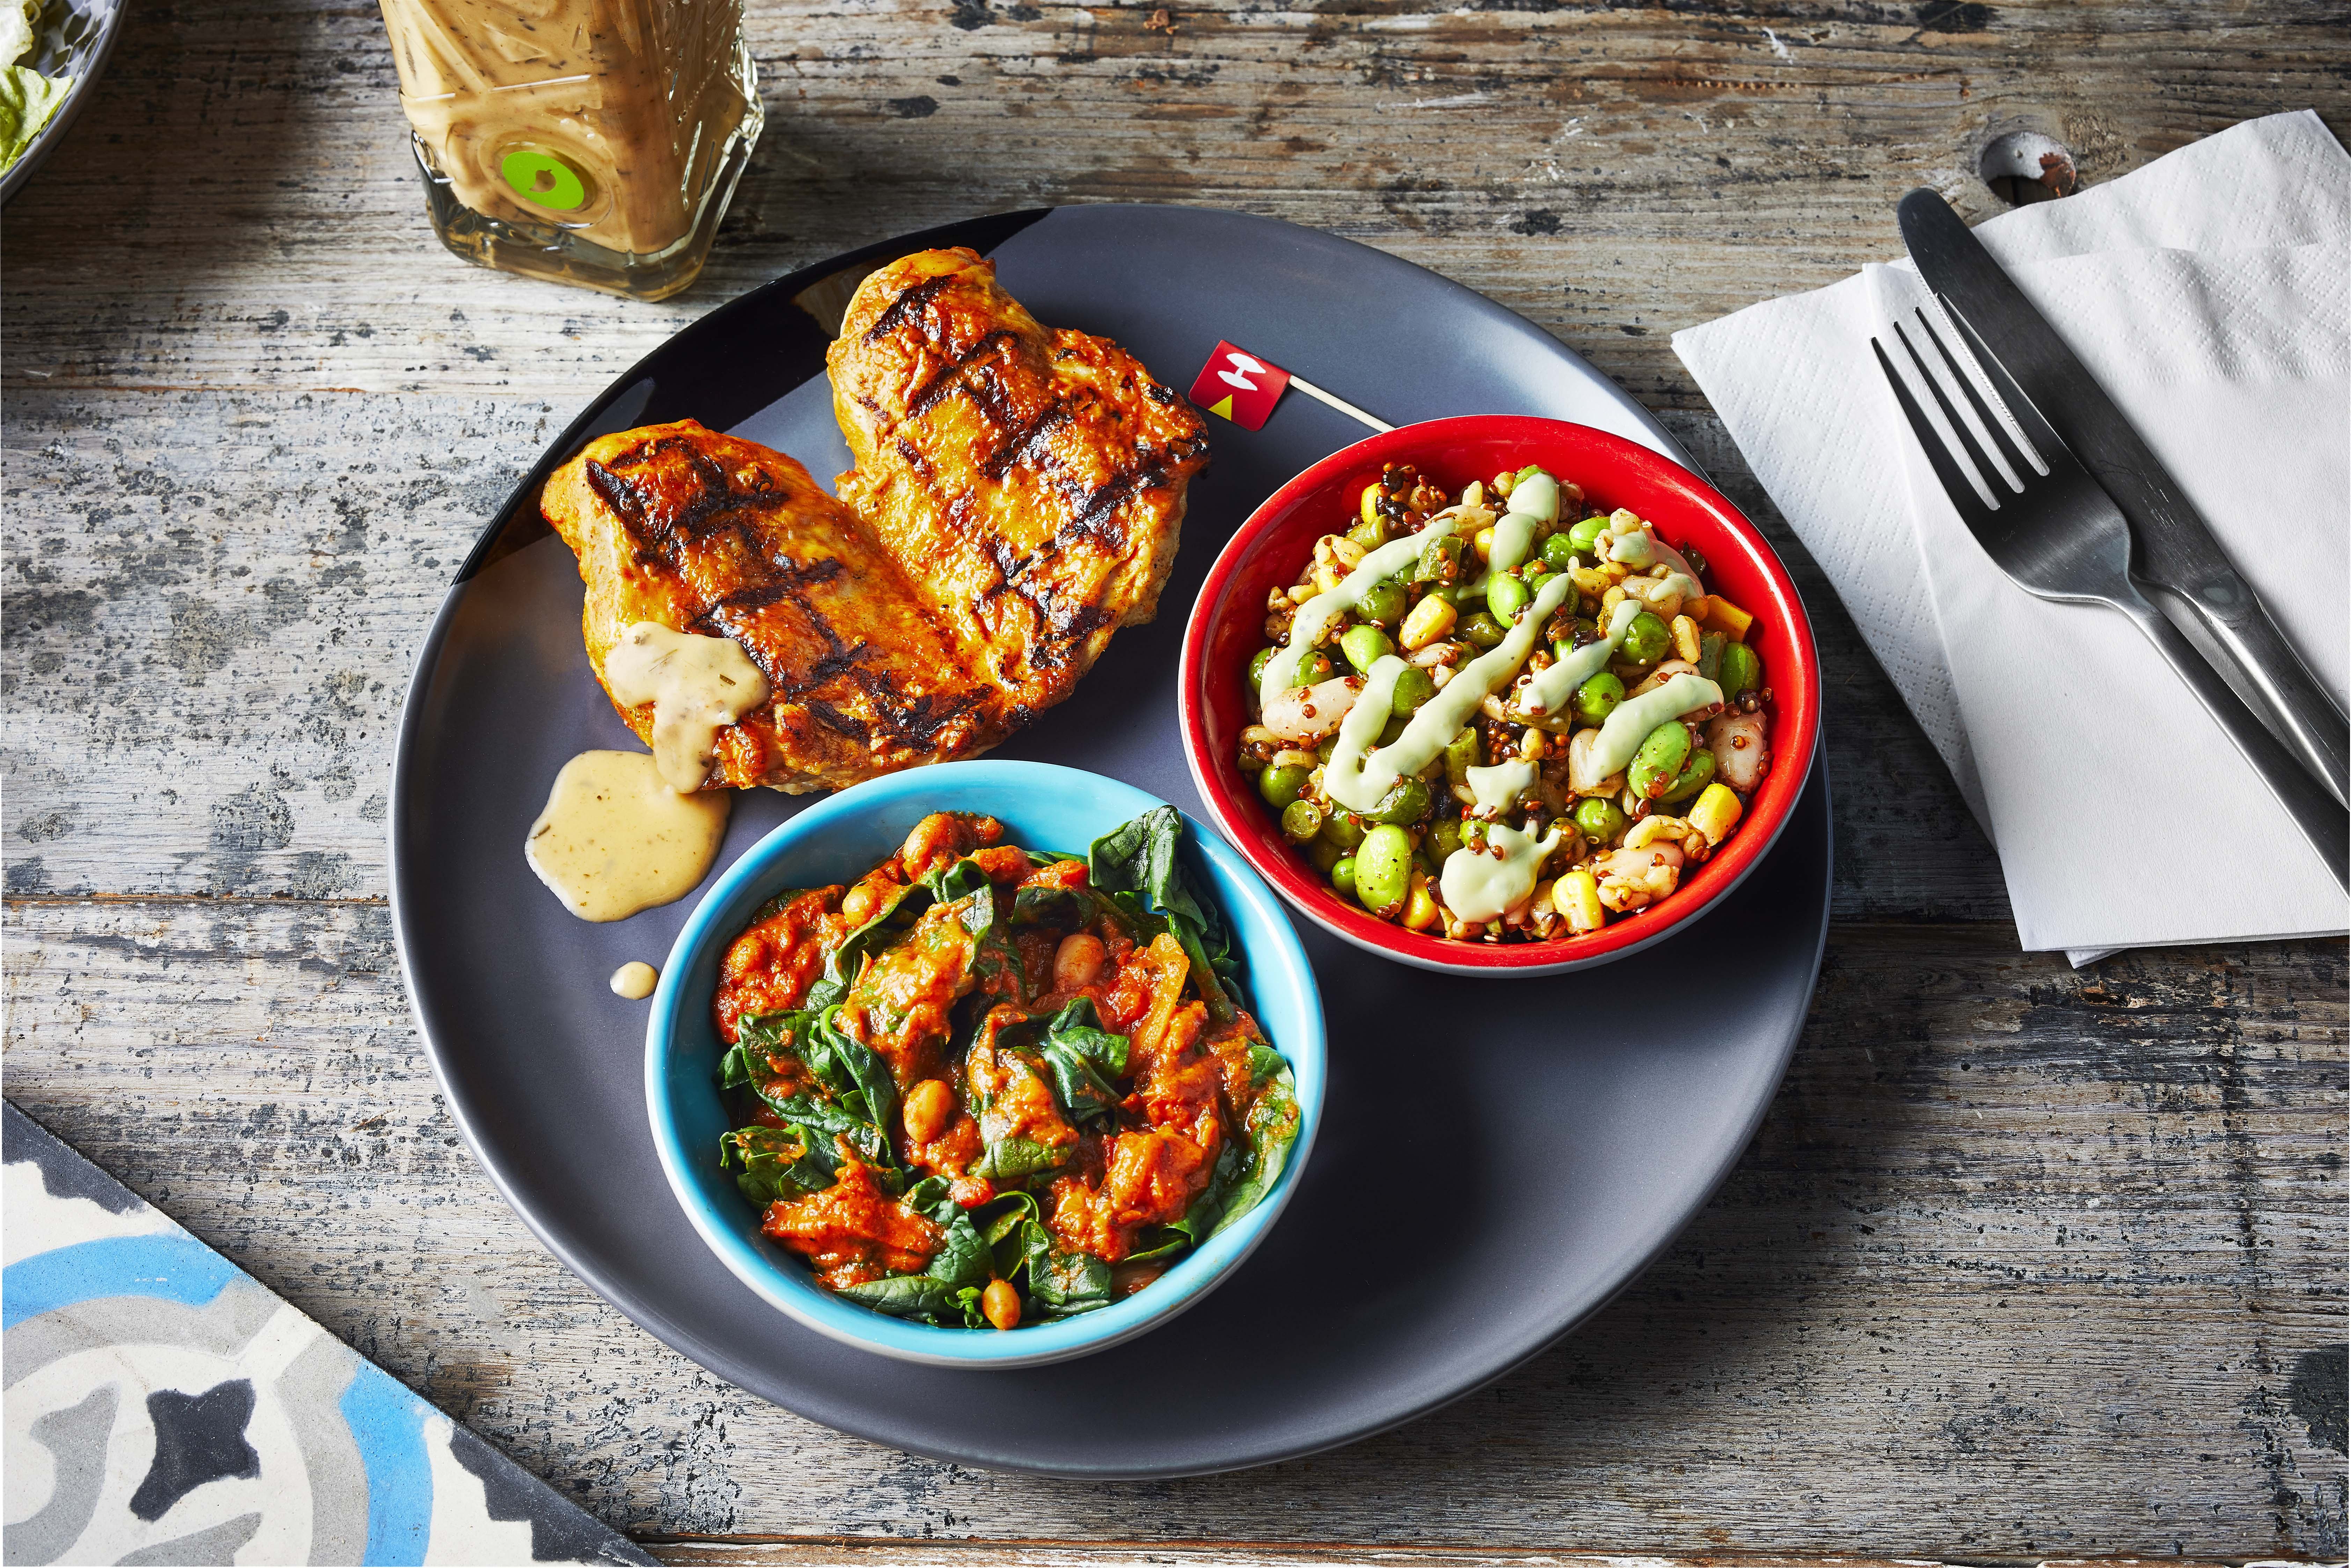 Our Food | Nando's